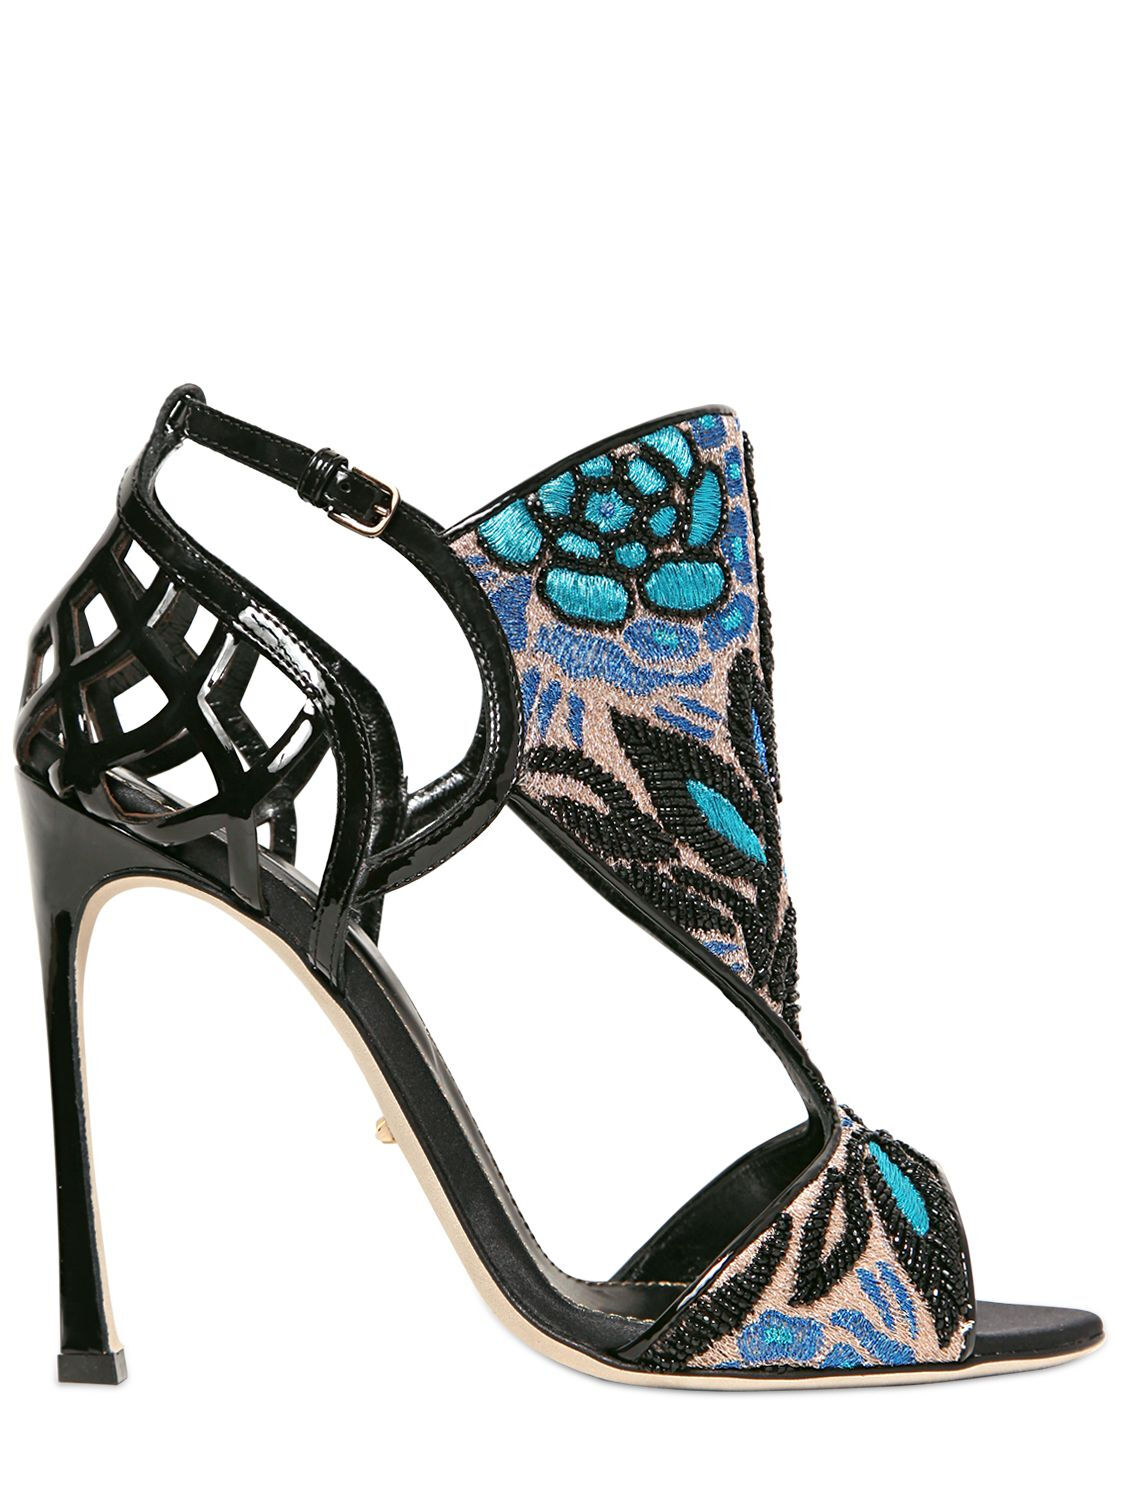 NEW Sergio Rossi Black Fortuny Embellished Patent Embroidered Sandals shoes 39